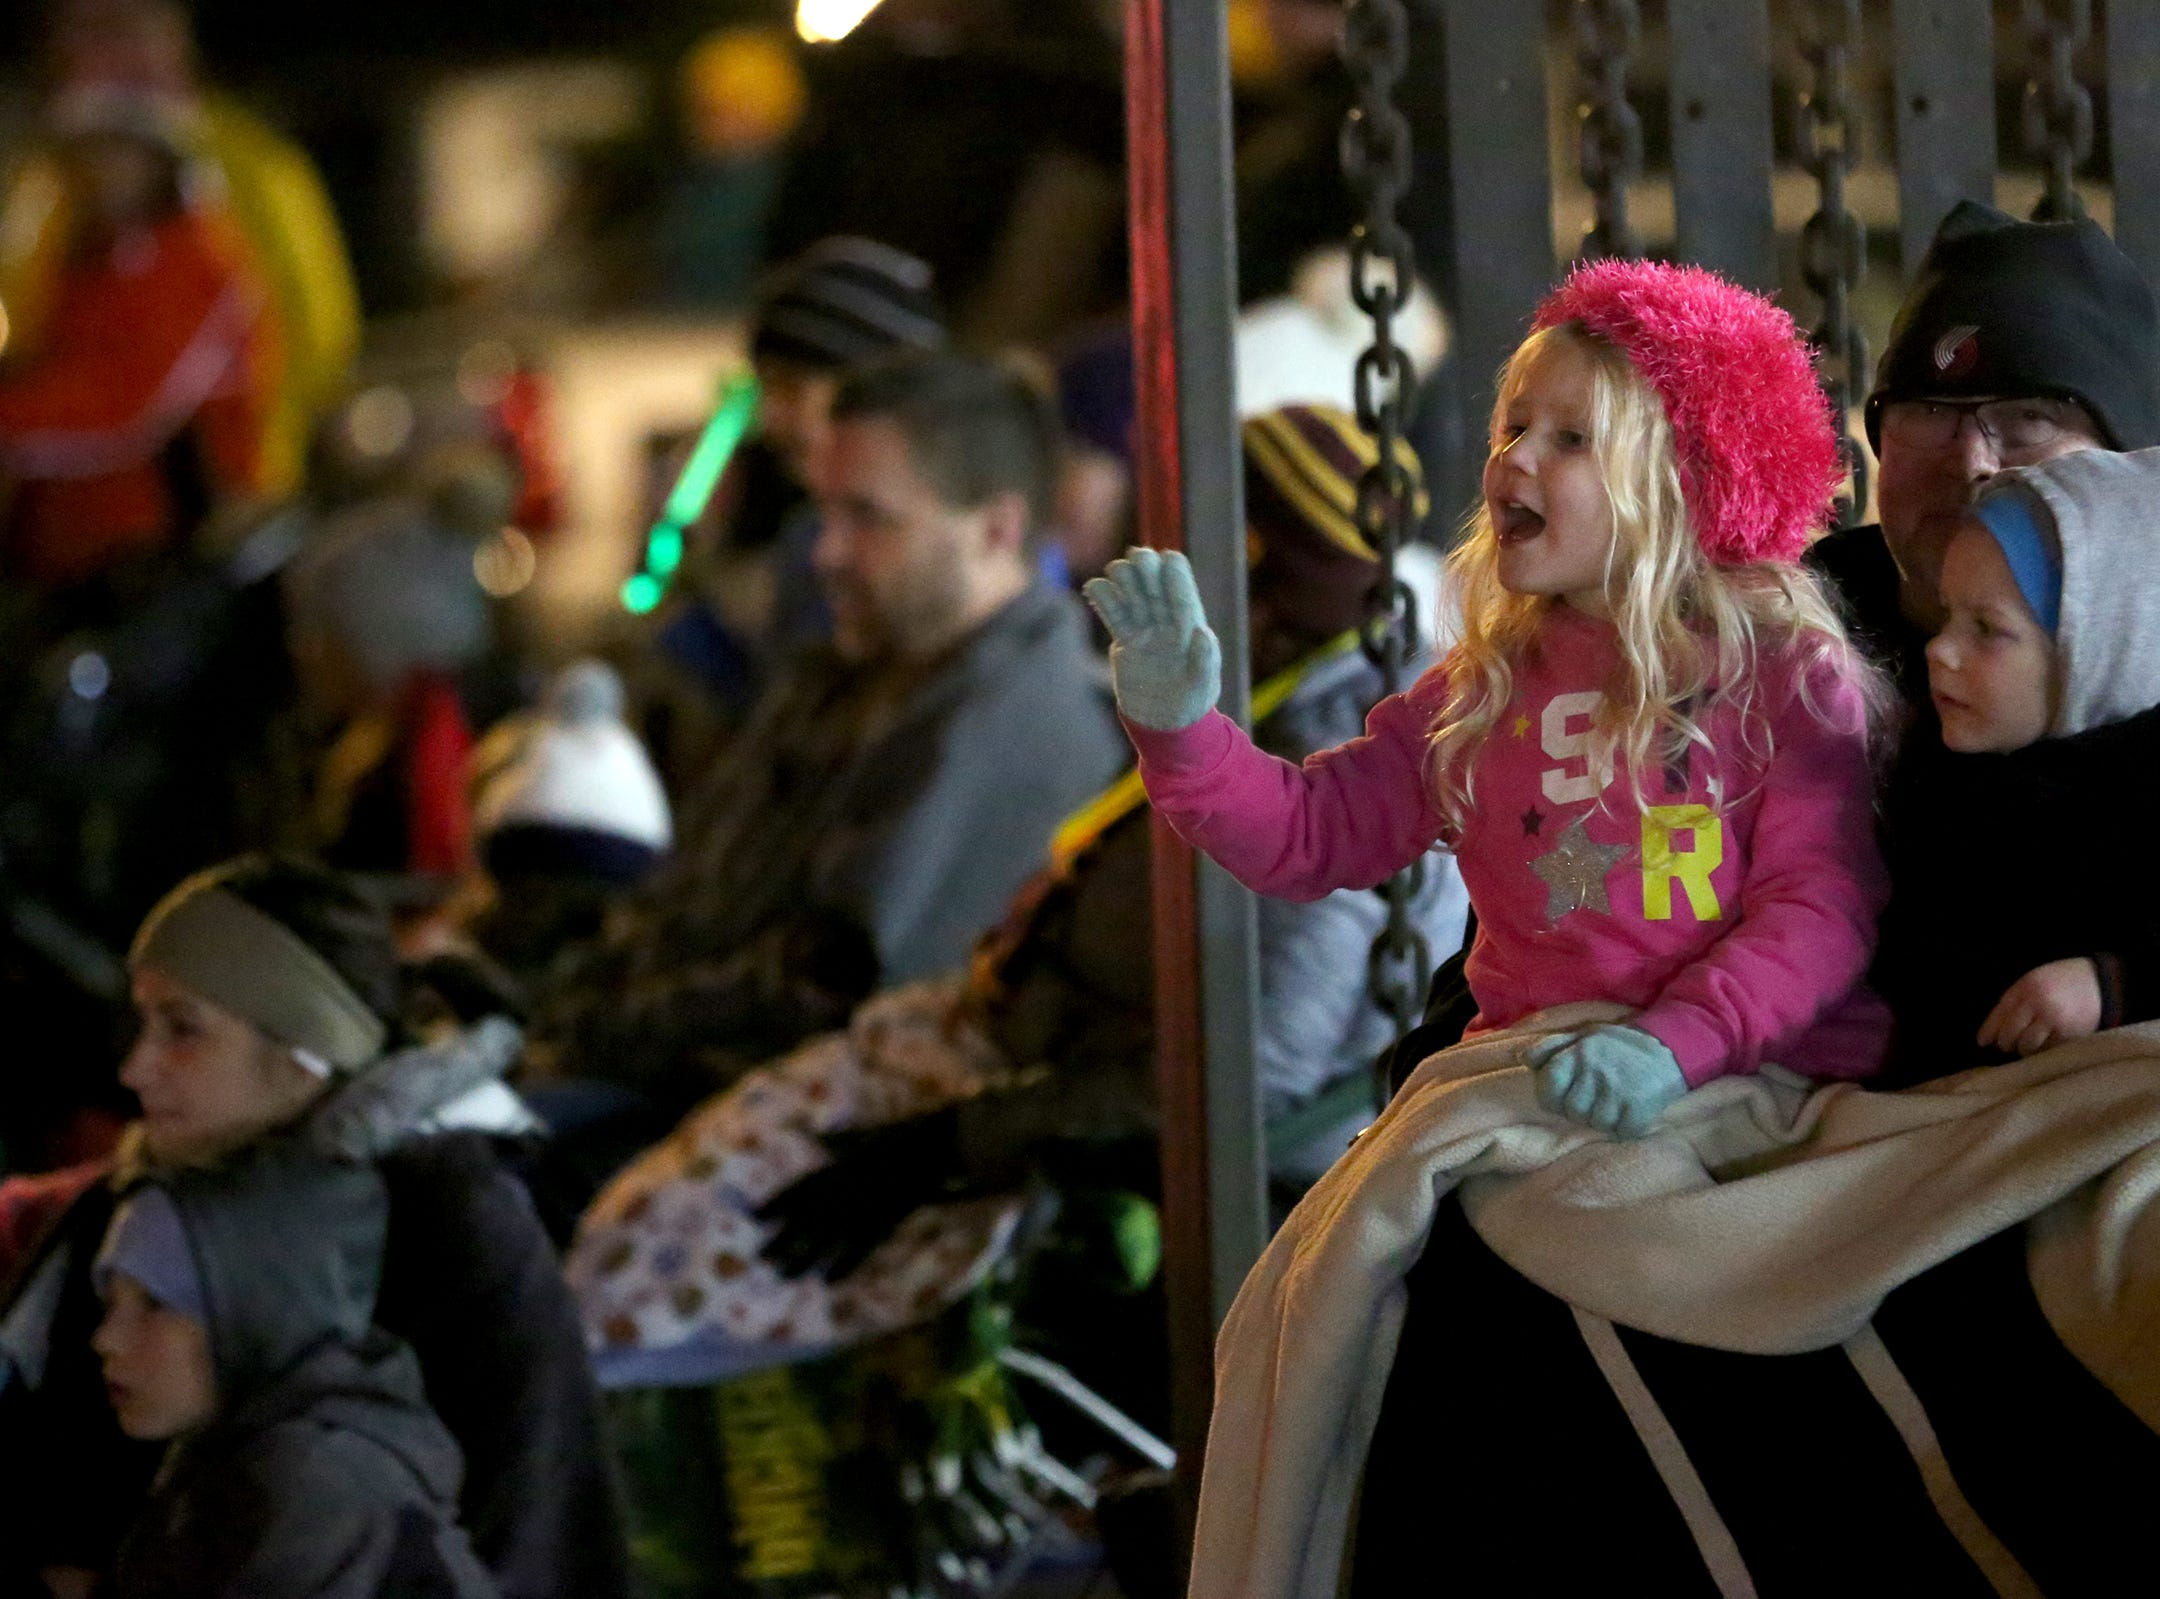 Parade attendees are shown at the Keizer Holiday Lights Parade in Keizer on Saturday, Dec. 8, 2018.